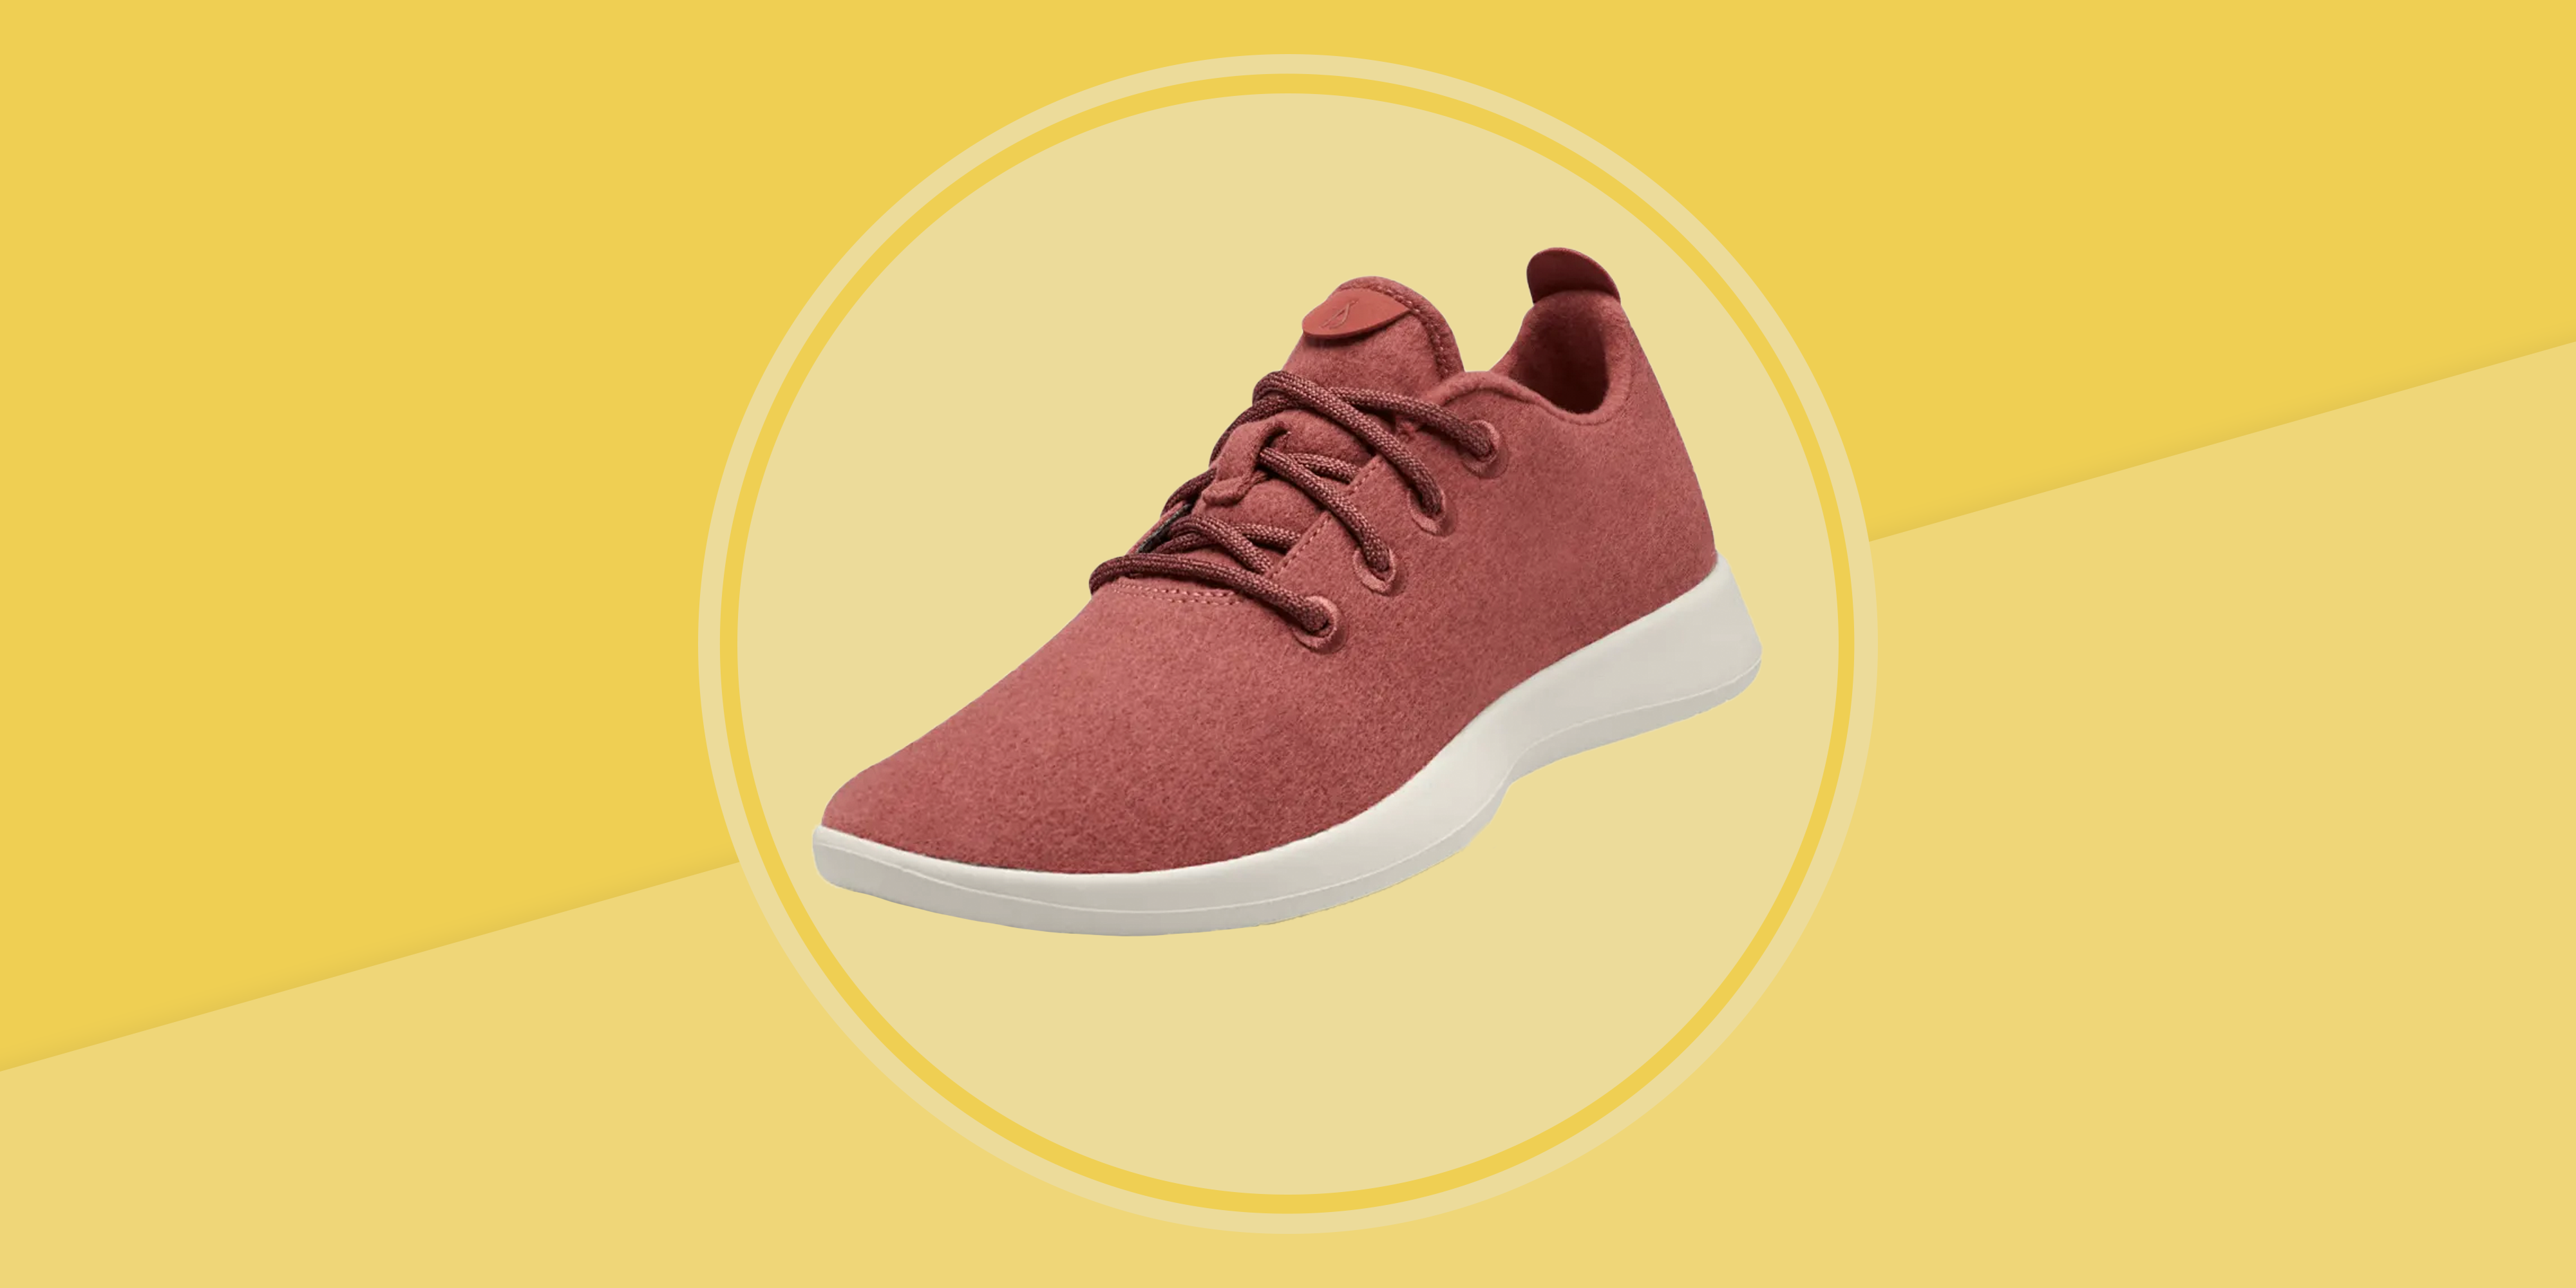 Allbirds' New Sneakers Are a Great Father's Day Gift for 2019